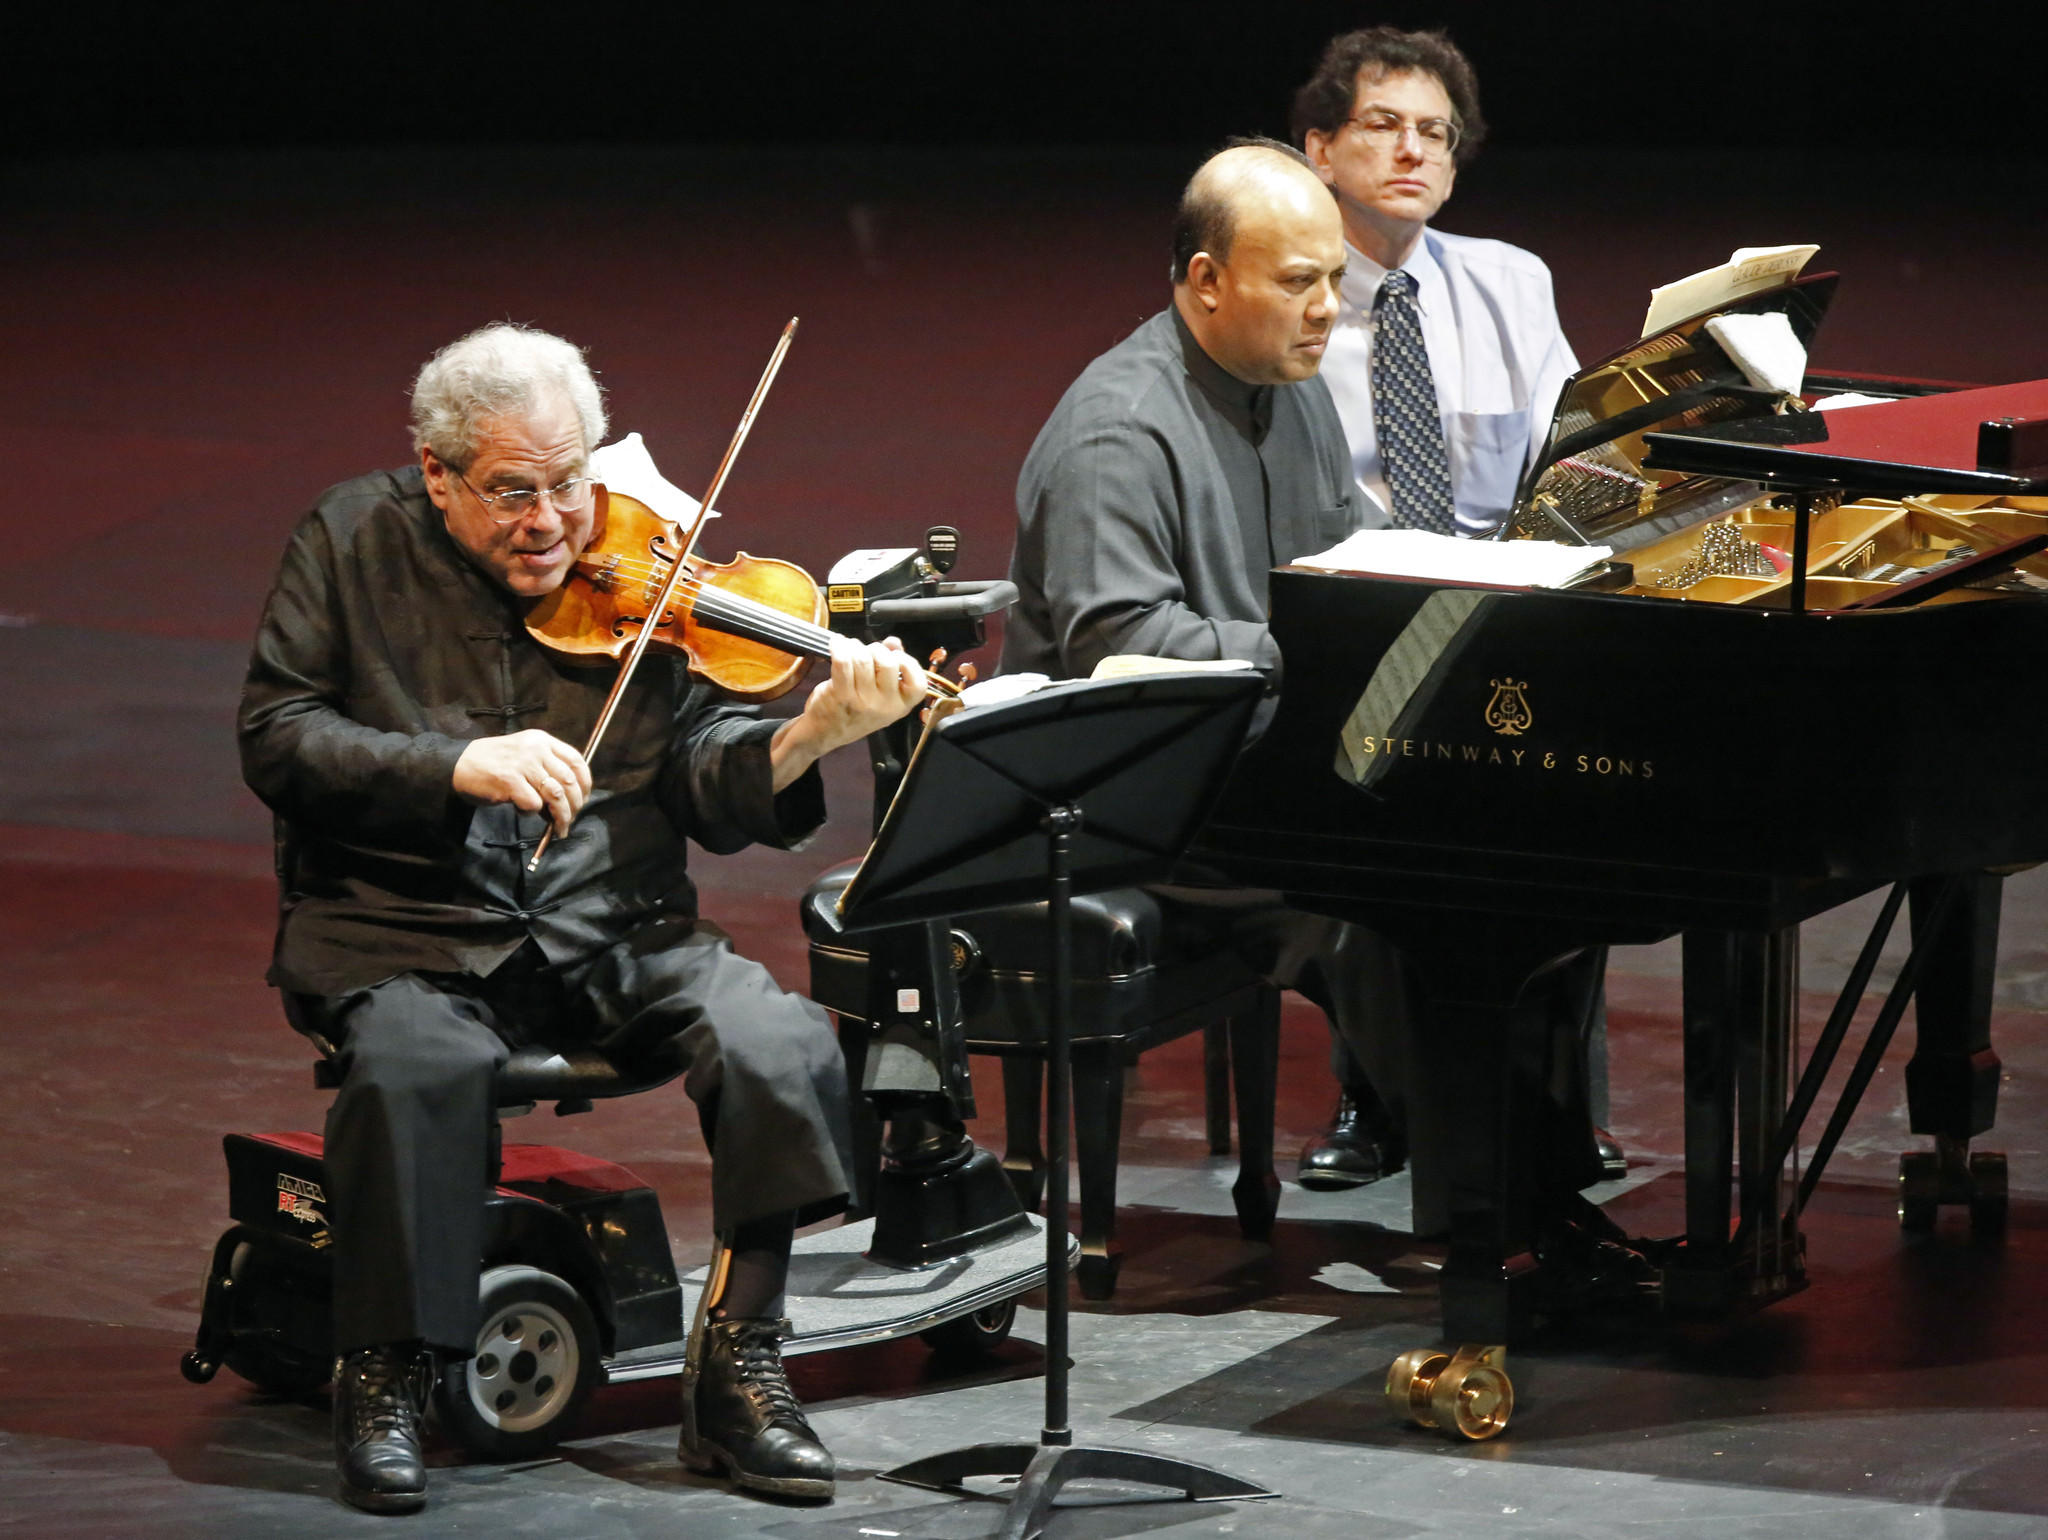 (Left to right)Violinist Itzhak Perlman and pianist Rohan De Silva, during their performance at the Civic Opera House in Chicago.